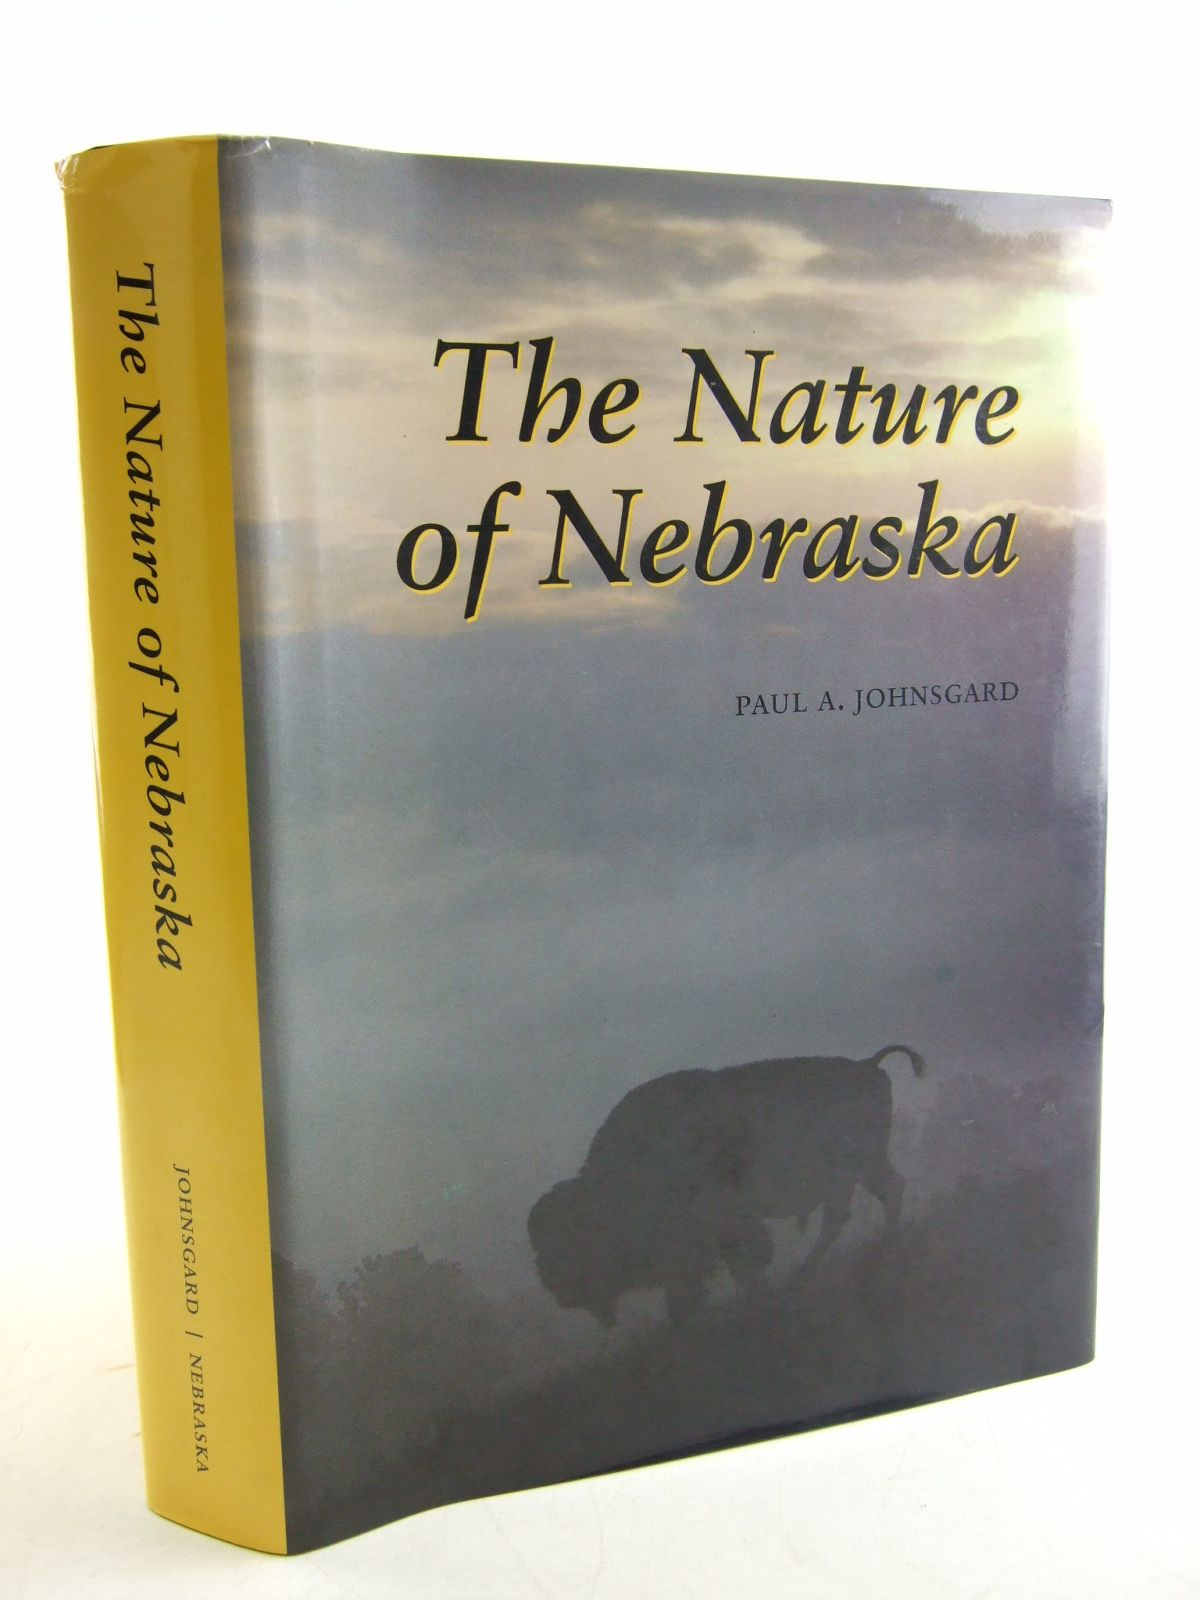 Photo of THE NATURE OF NEBRASKA ECOLOGY AND BIODIVERSITY written by Johnsgard, Paul A. published by University of Nebraska (STOCK CODE: 1806061)  for sale by Stella & Rose's Books